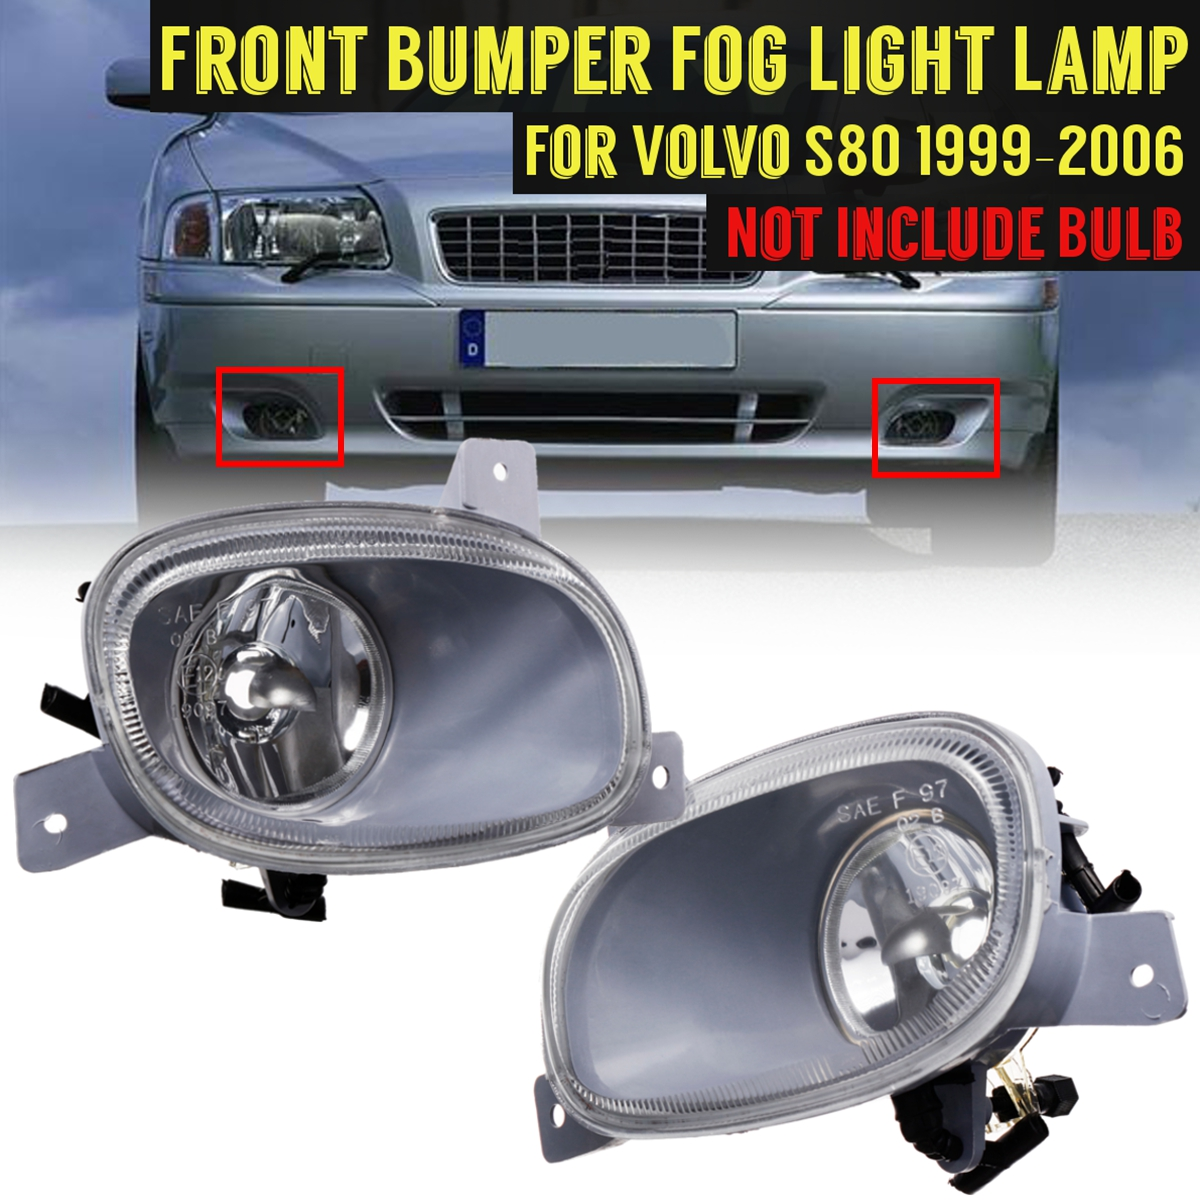 For Volvo S80 1999 2000 2001 2002 2003 2004 2005 2006 8620224 8620225 1 Pair Front Bumper Fog Light With no Bulb Lamp